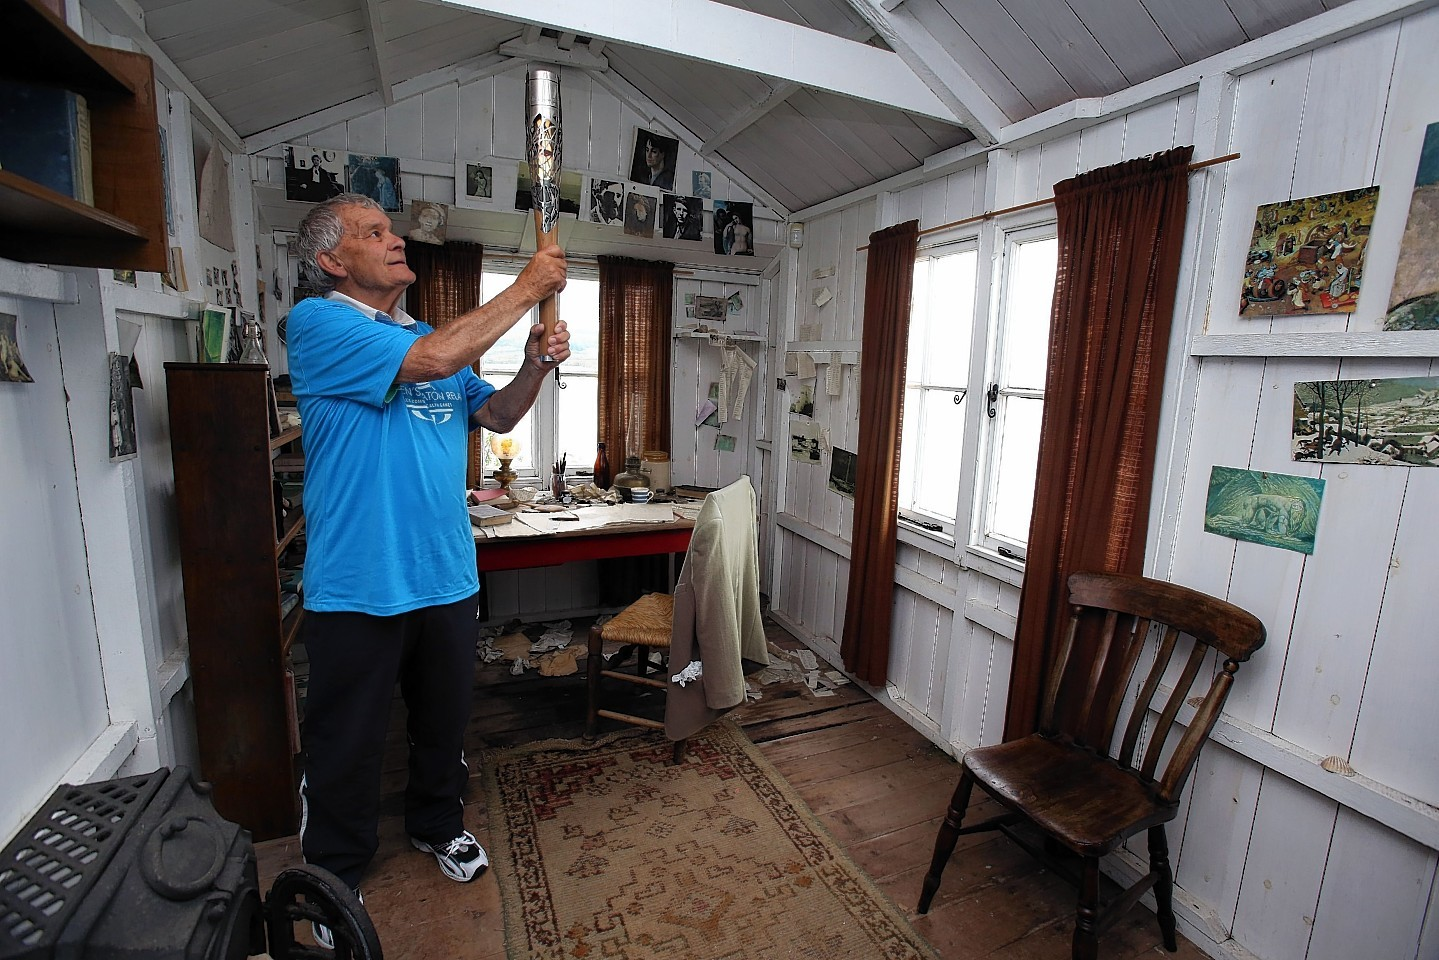 Baton Bearer John Phillips holding the Queen's Baton inside the Dylan Thomas writing shed at Laugharne in Wales. Wales is nation 68 of 70 nations and territories the Queen's Baton will visit